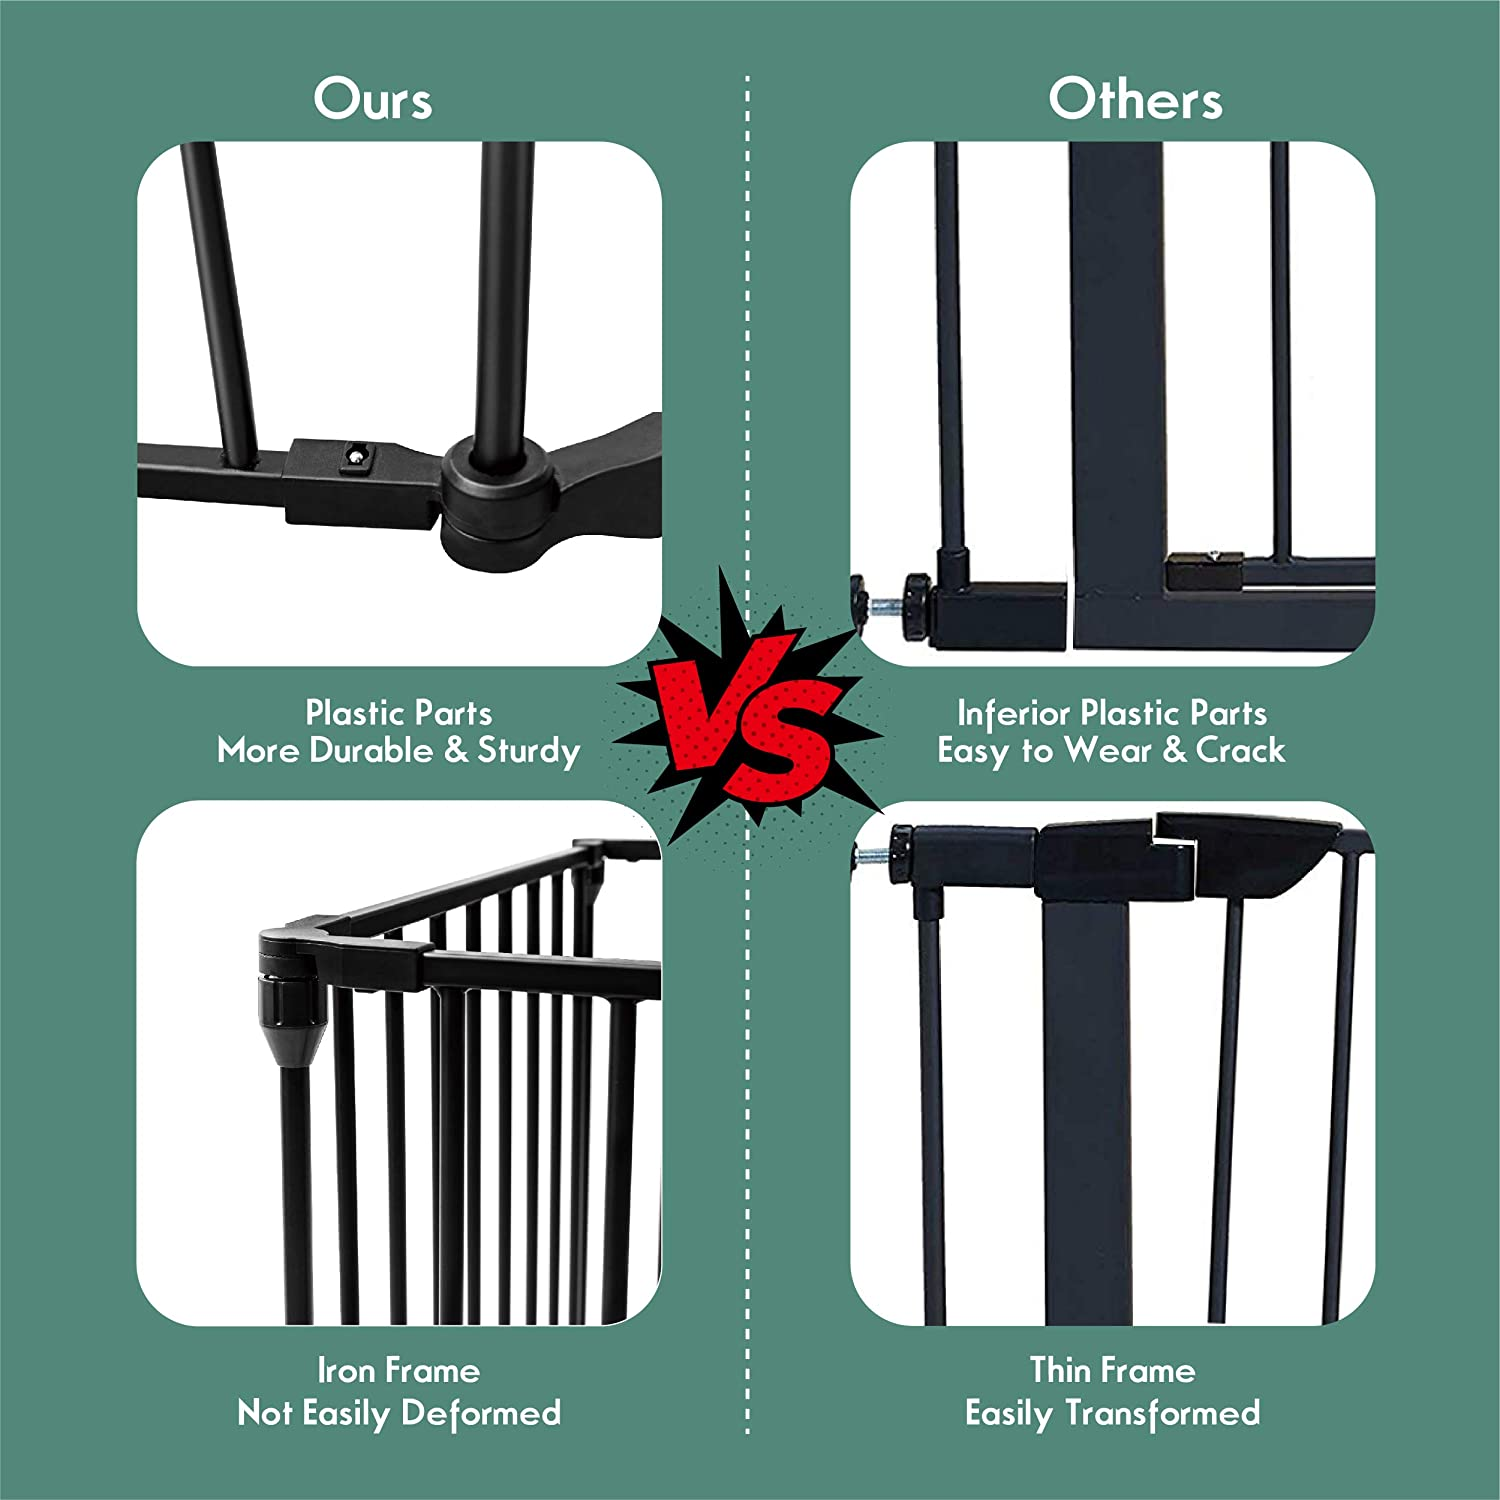 6-Panel,Black Wall-Mount Metal Play Yard for Toddler//Pet//Christmas 6-Panel Fireplace Fence with Walk-Through Door in Two Directions 4 Pack of Wall Mounts Costzon 150-Inch Wide Baby Safety Gate